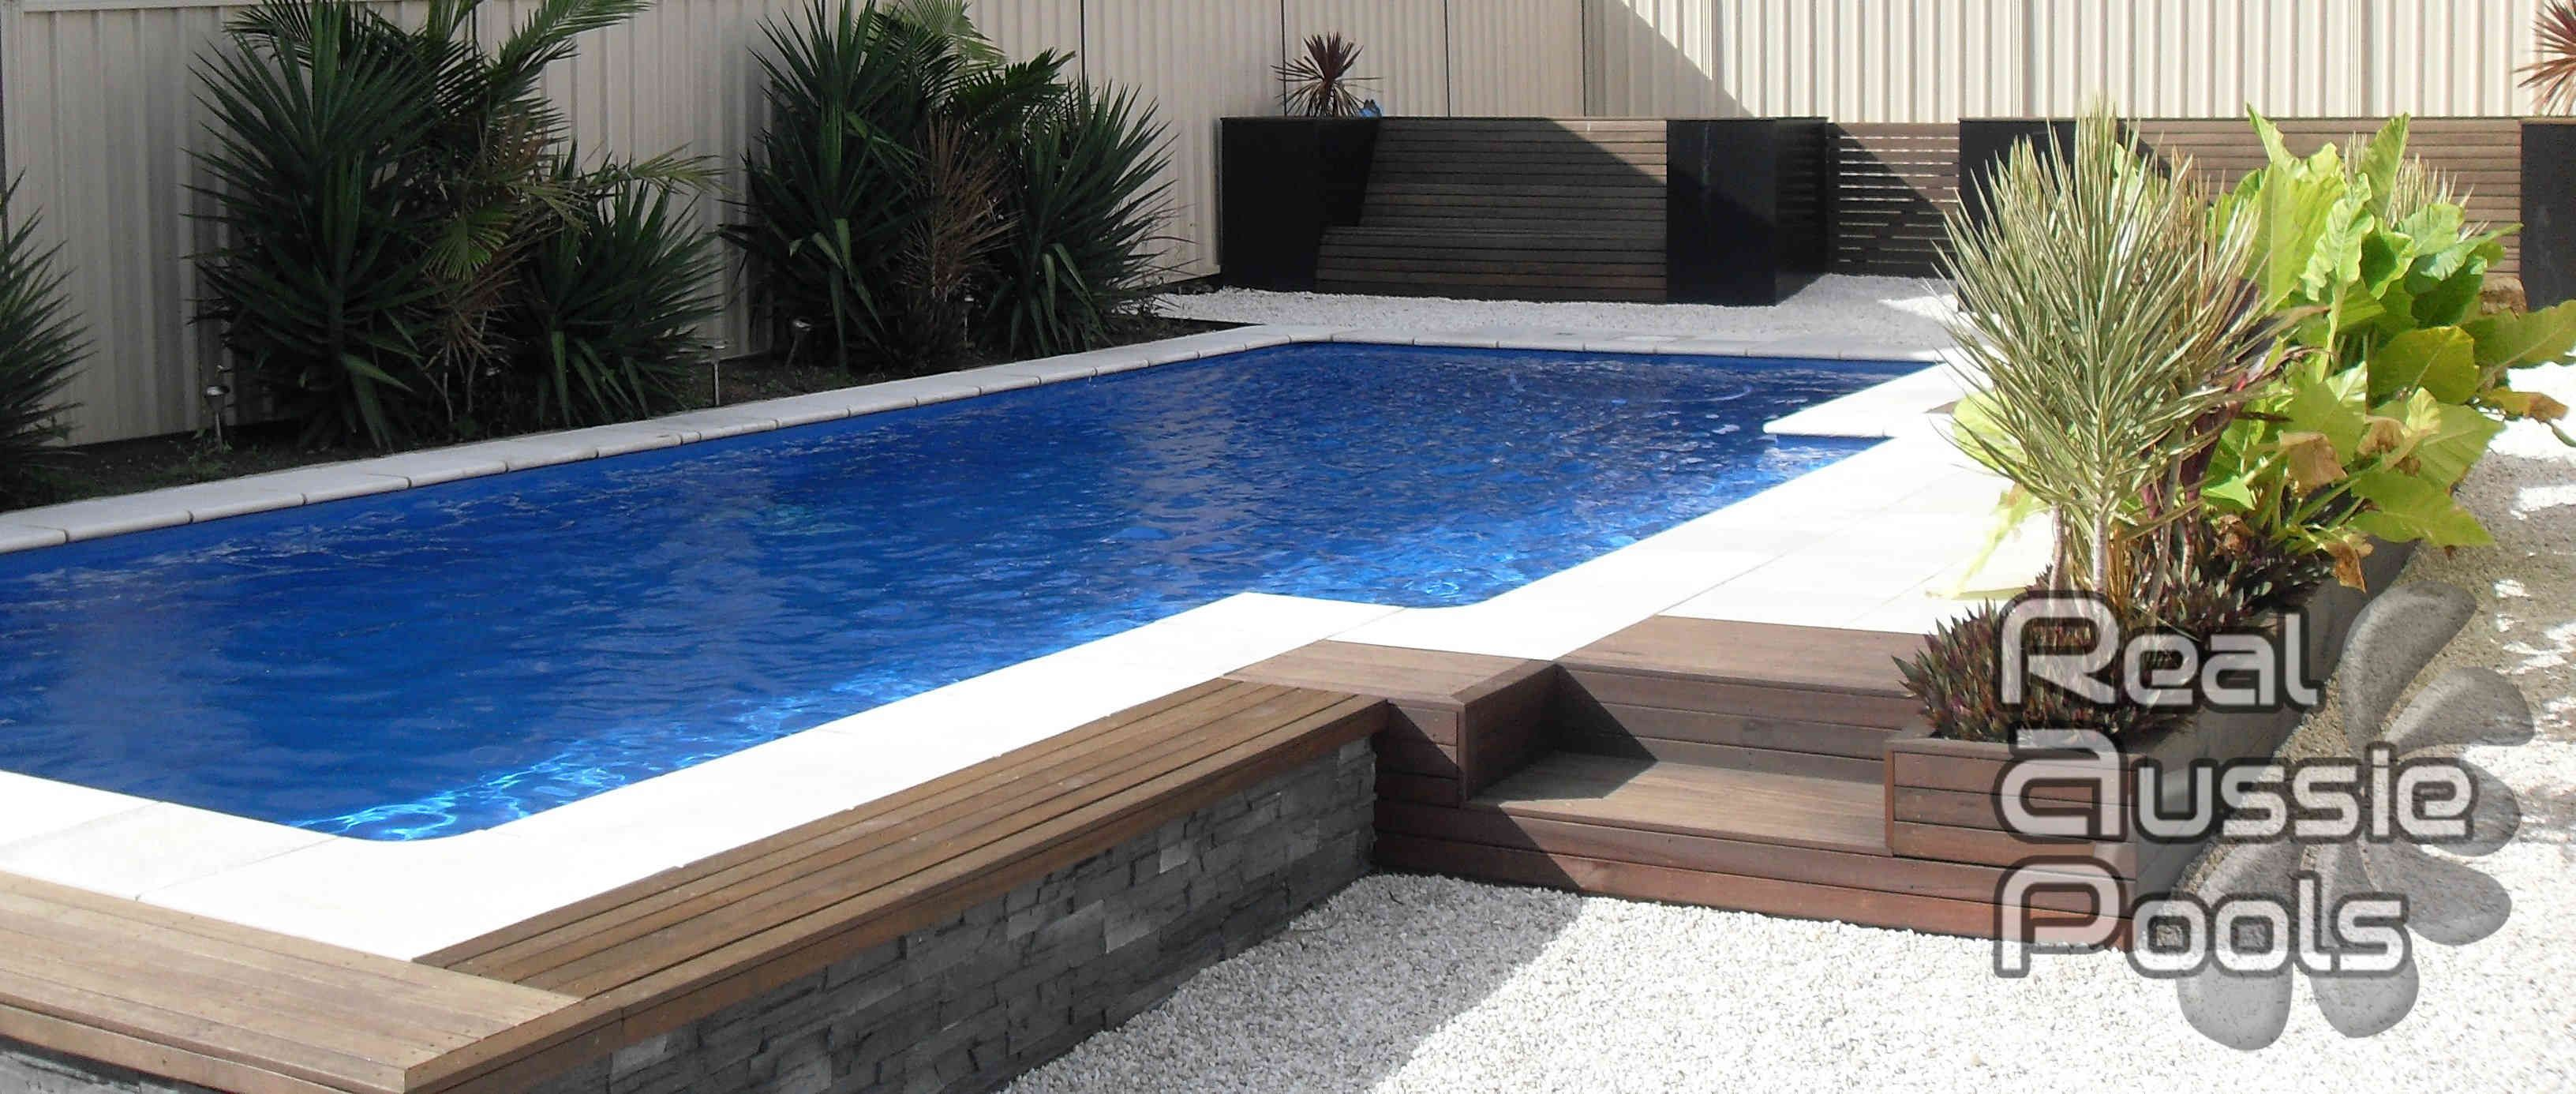 Genial Fibreglass Permanent Pool With Stone Materials Pool Frame And Fresh Plant  Decorating Also Minimalist Wooden Pool Side For Above Ground Plunge Pool  Design ...